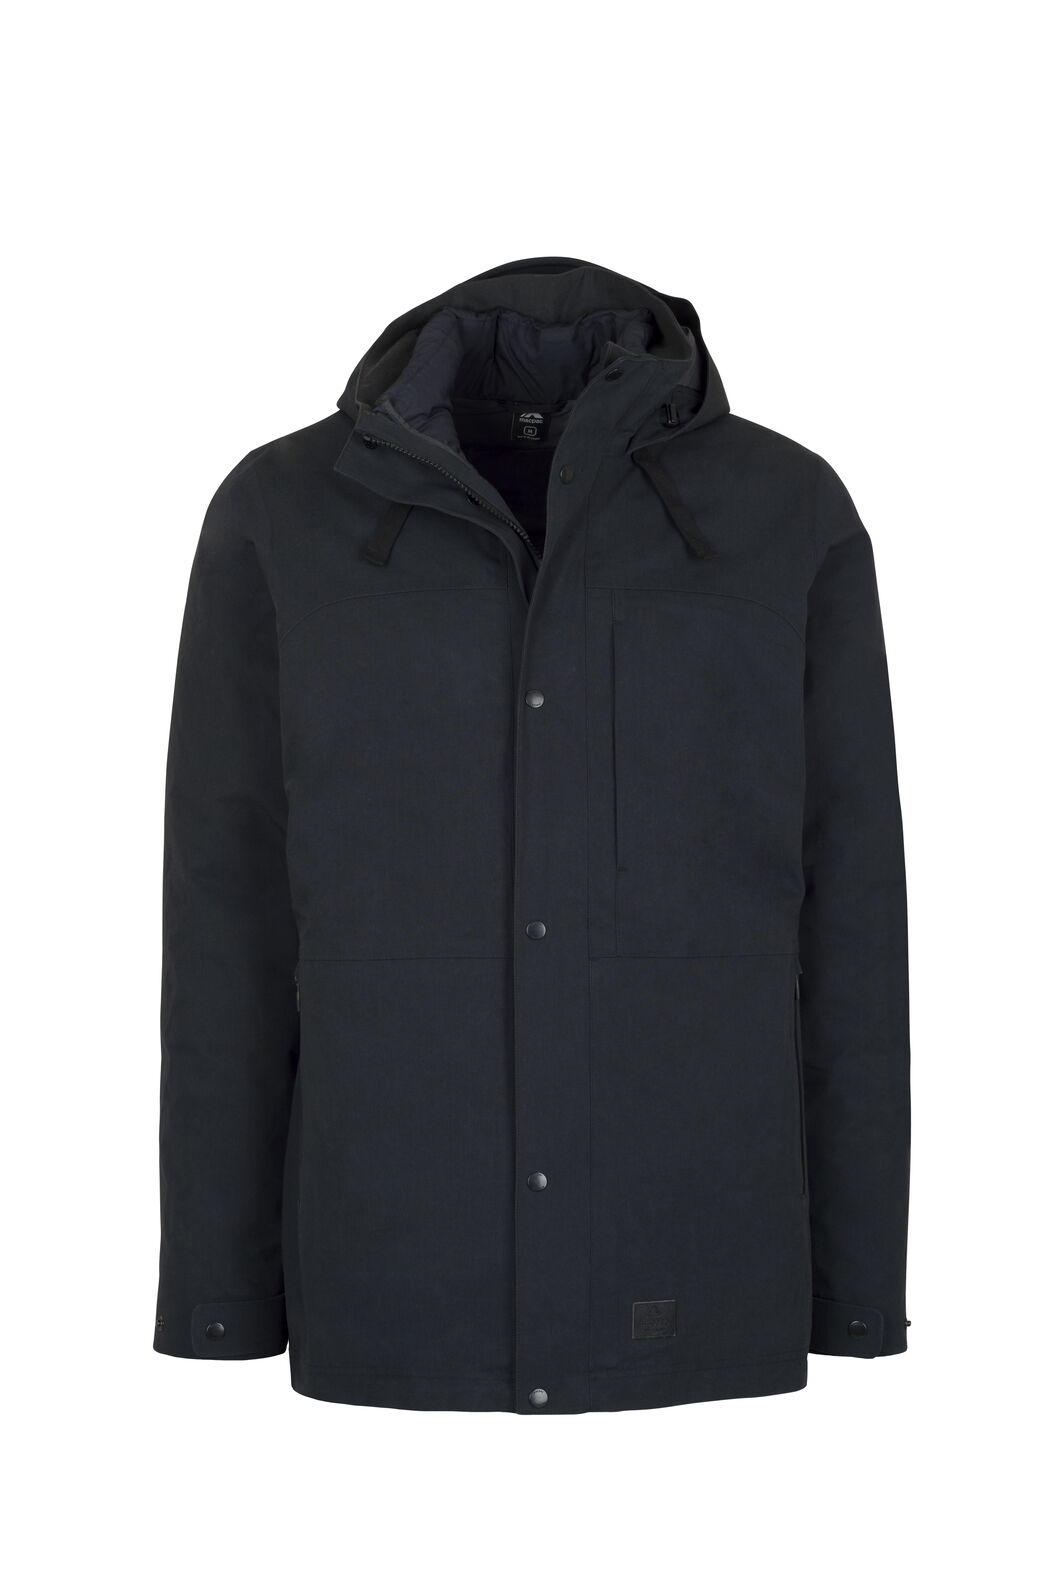 Macpac Element Three-In-One Pertex® Coat — Men's, Black, hi-res